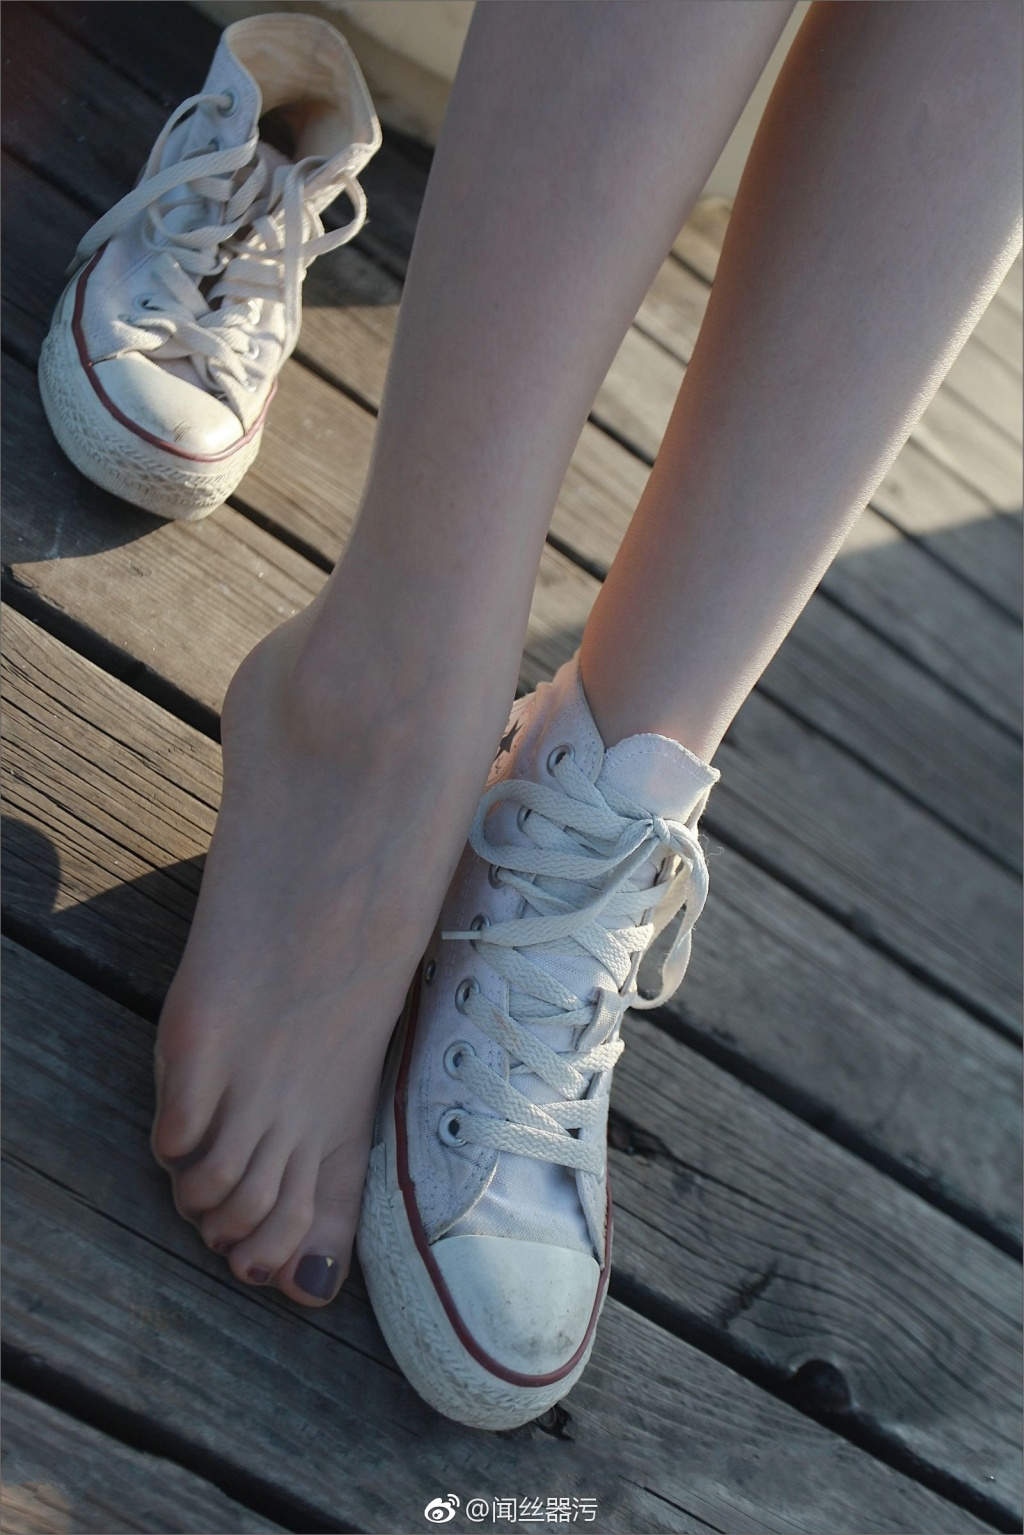 58 - Colorless stockings white canvas shoes white feet 无色丝袜白色帆布鞋白嫩小脚丫